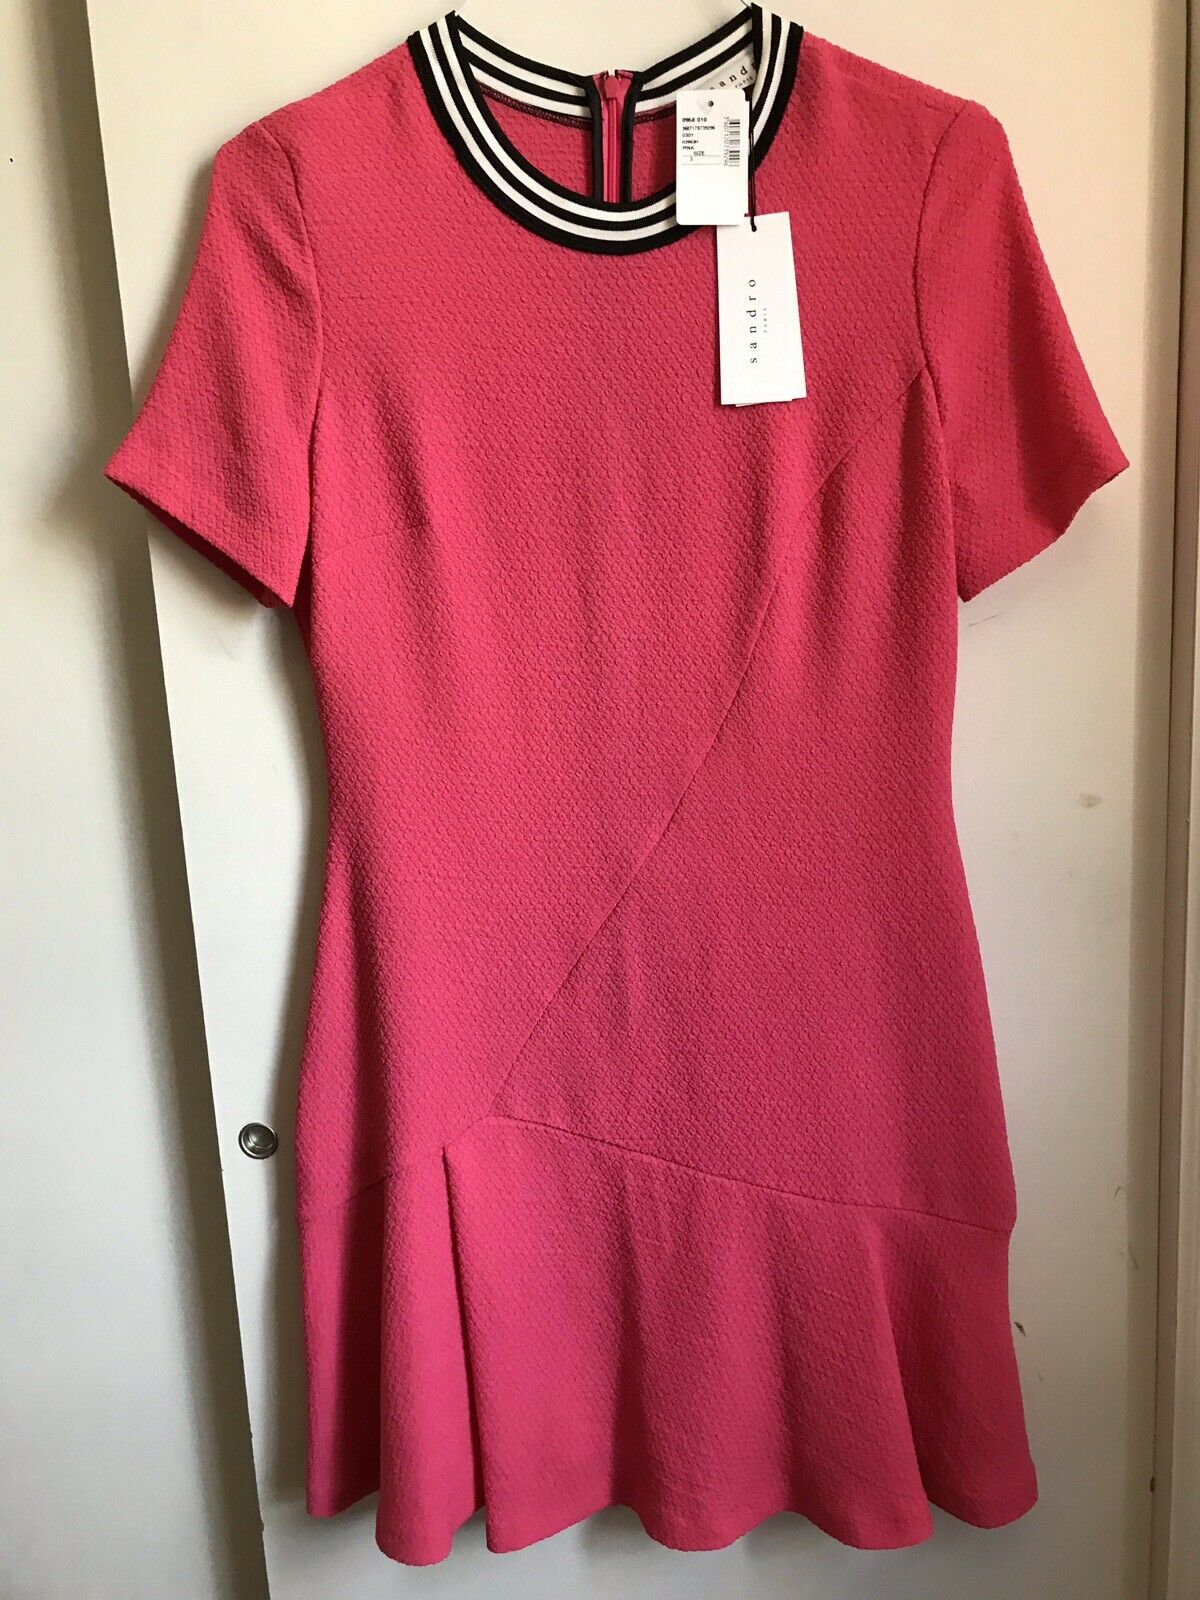 NWT! SANDRO Pink SS Dress W/ Athletic Stripe Detail Msrp $355